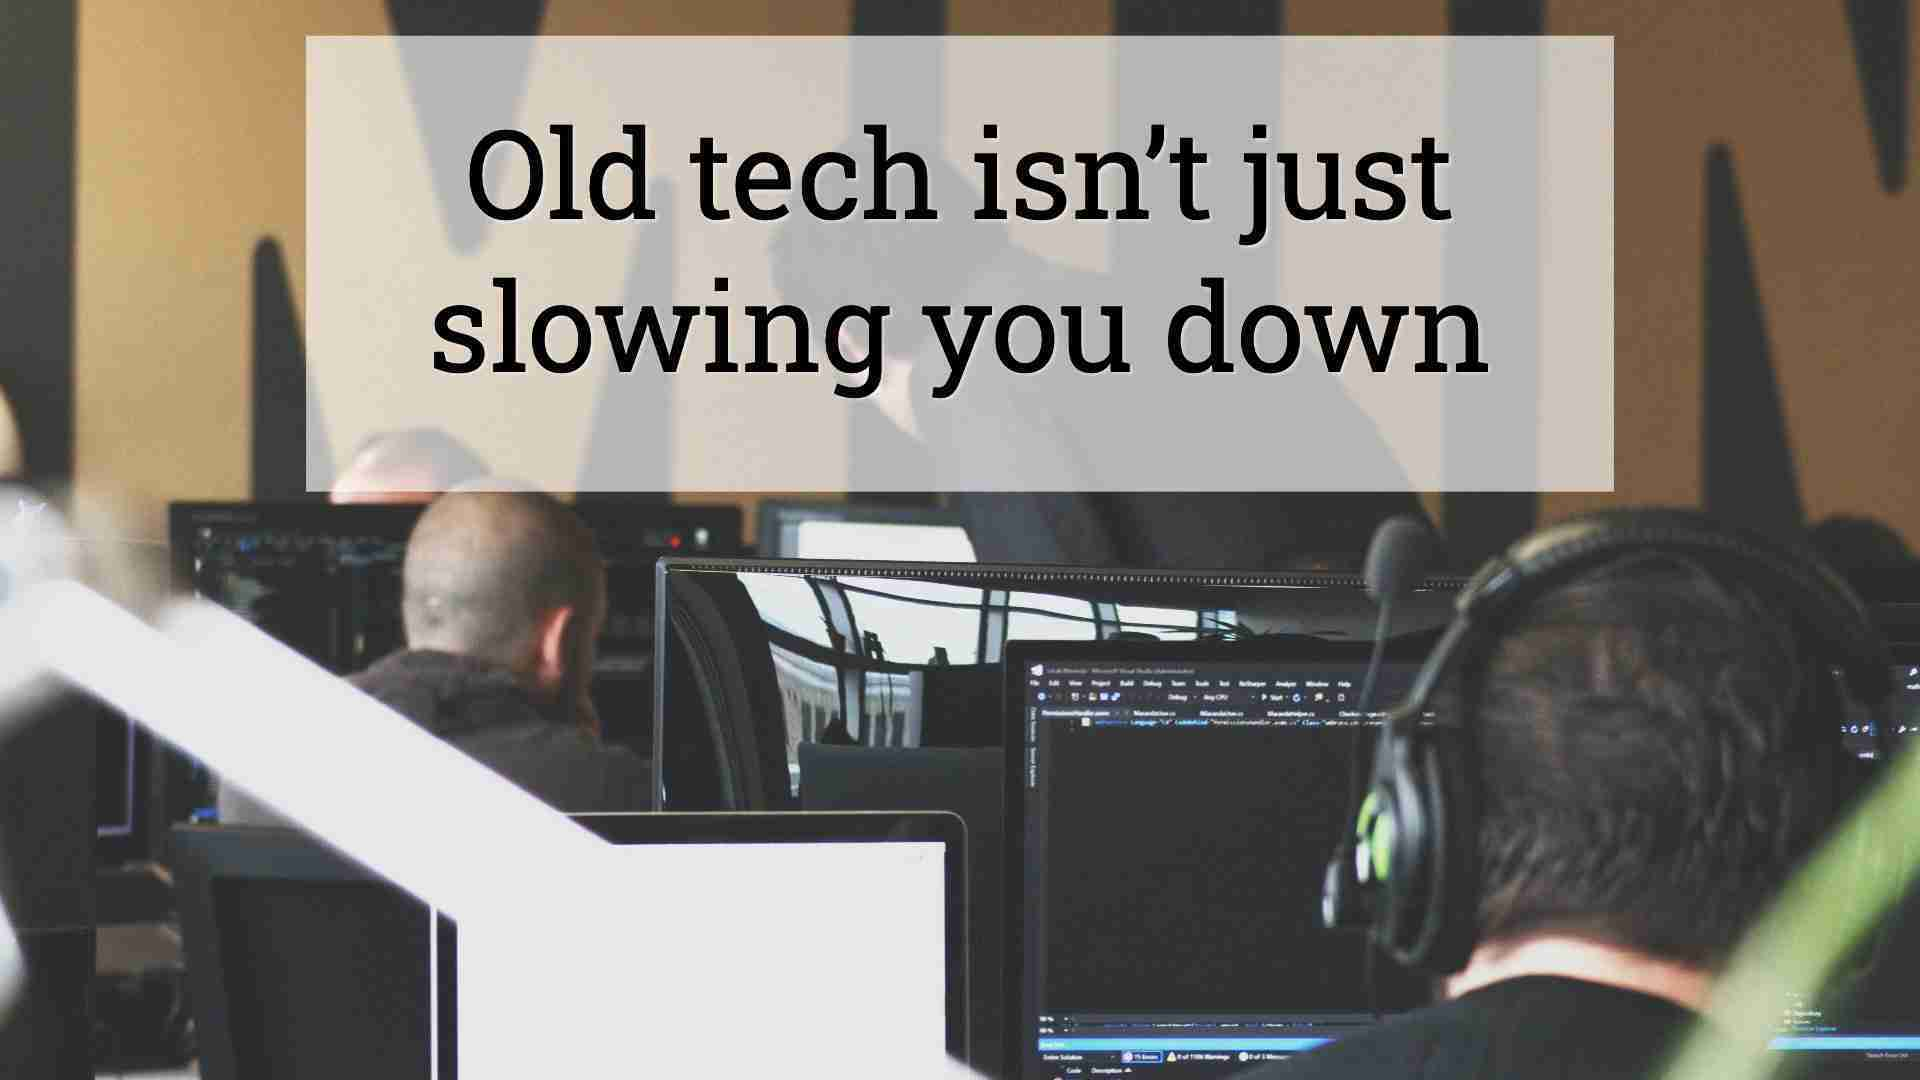 Old tech isn't just slowing you down